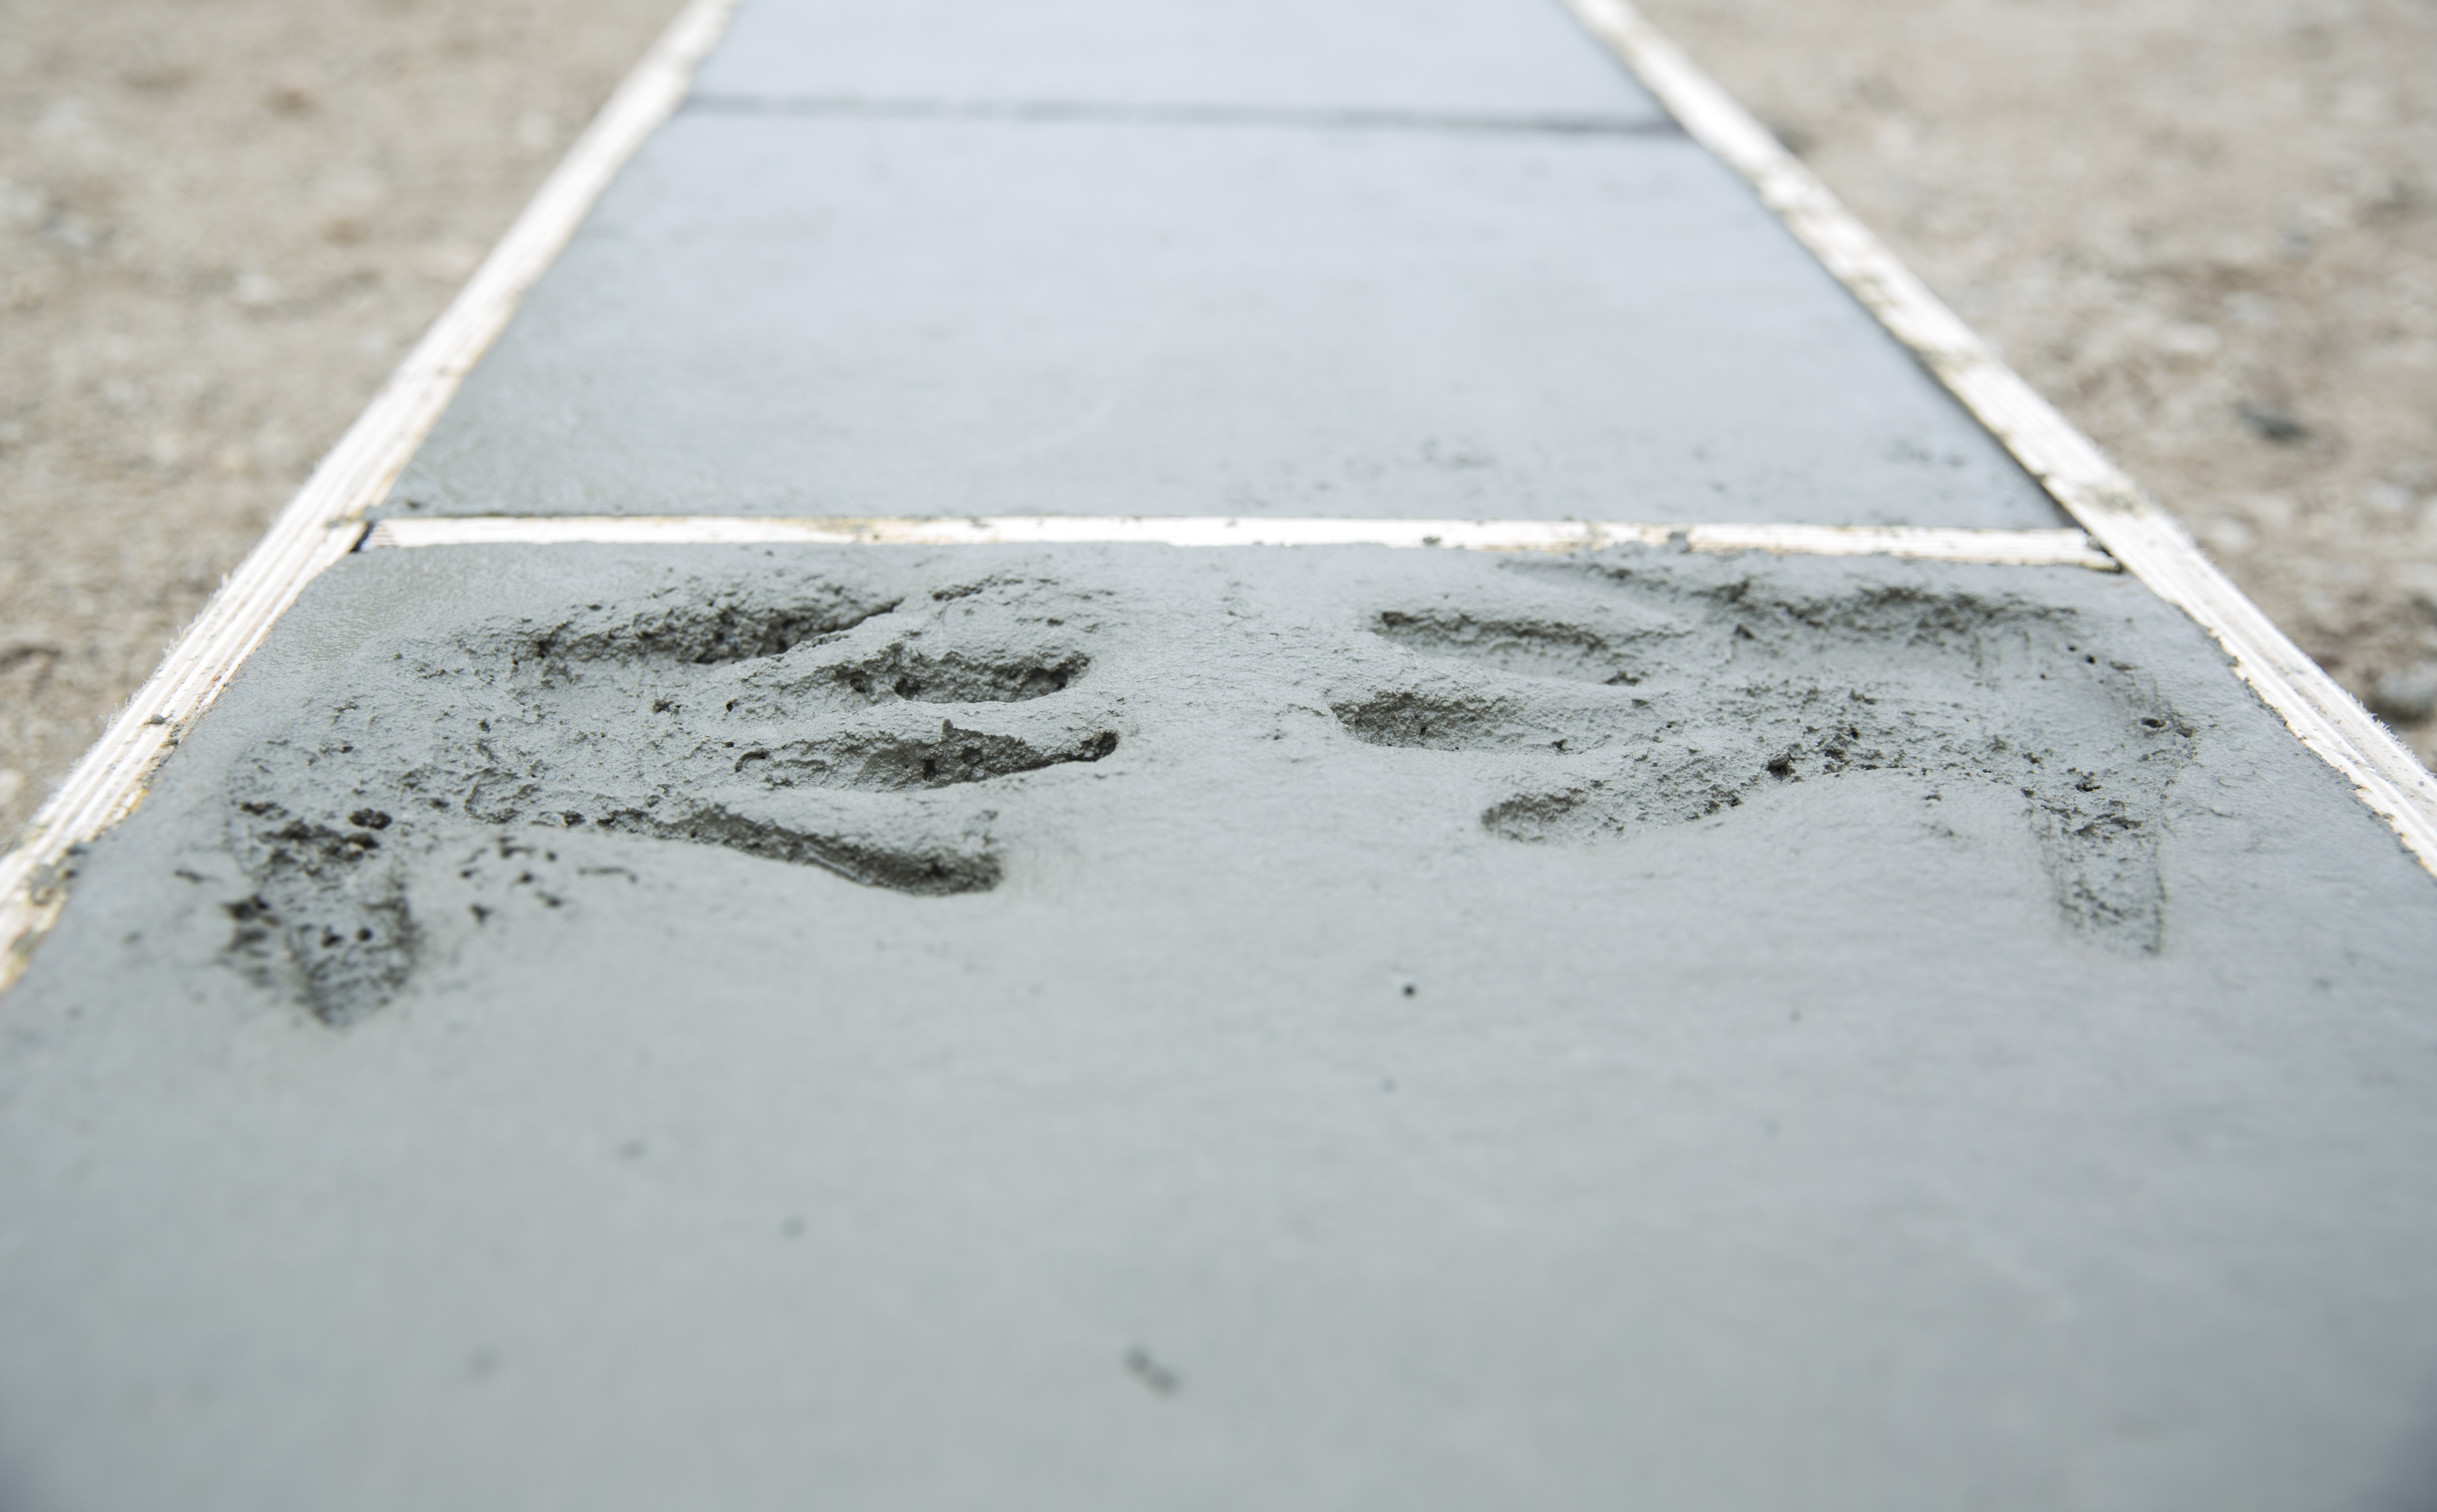 Photo: two handprints in fresh cement inside a formwork